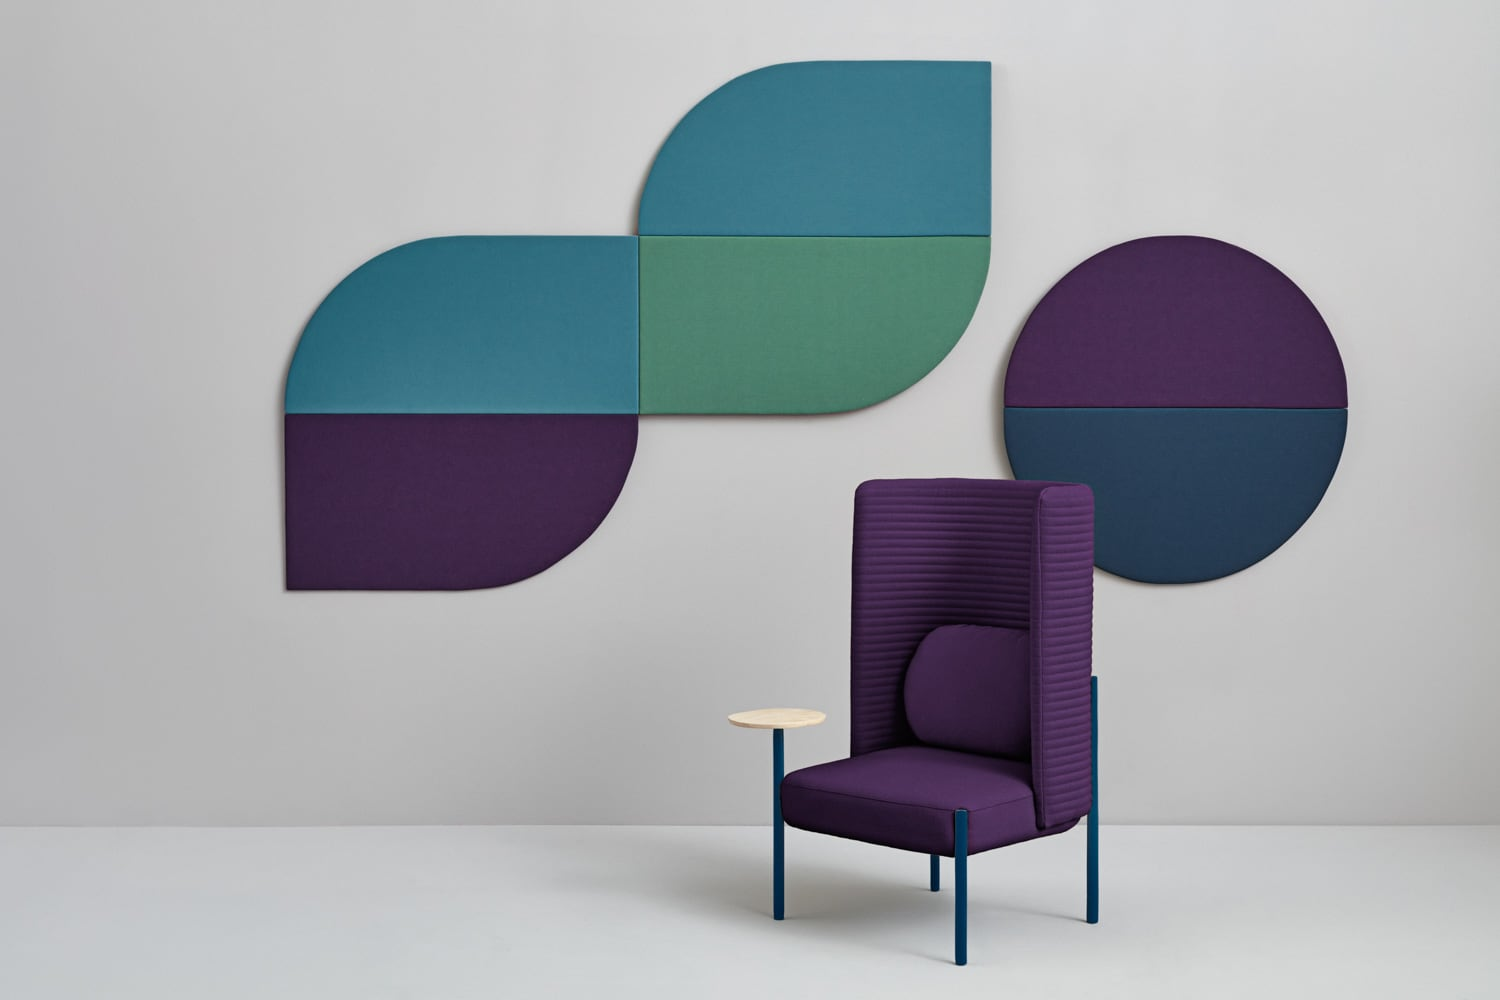 pause-acoustic-panels-work-spaces-interior-design